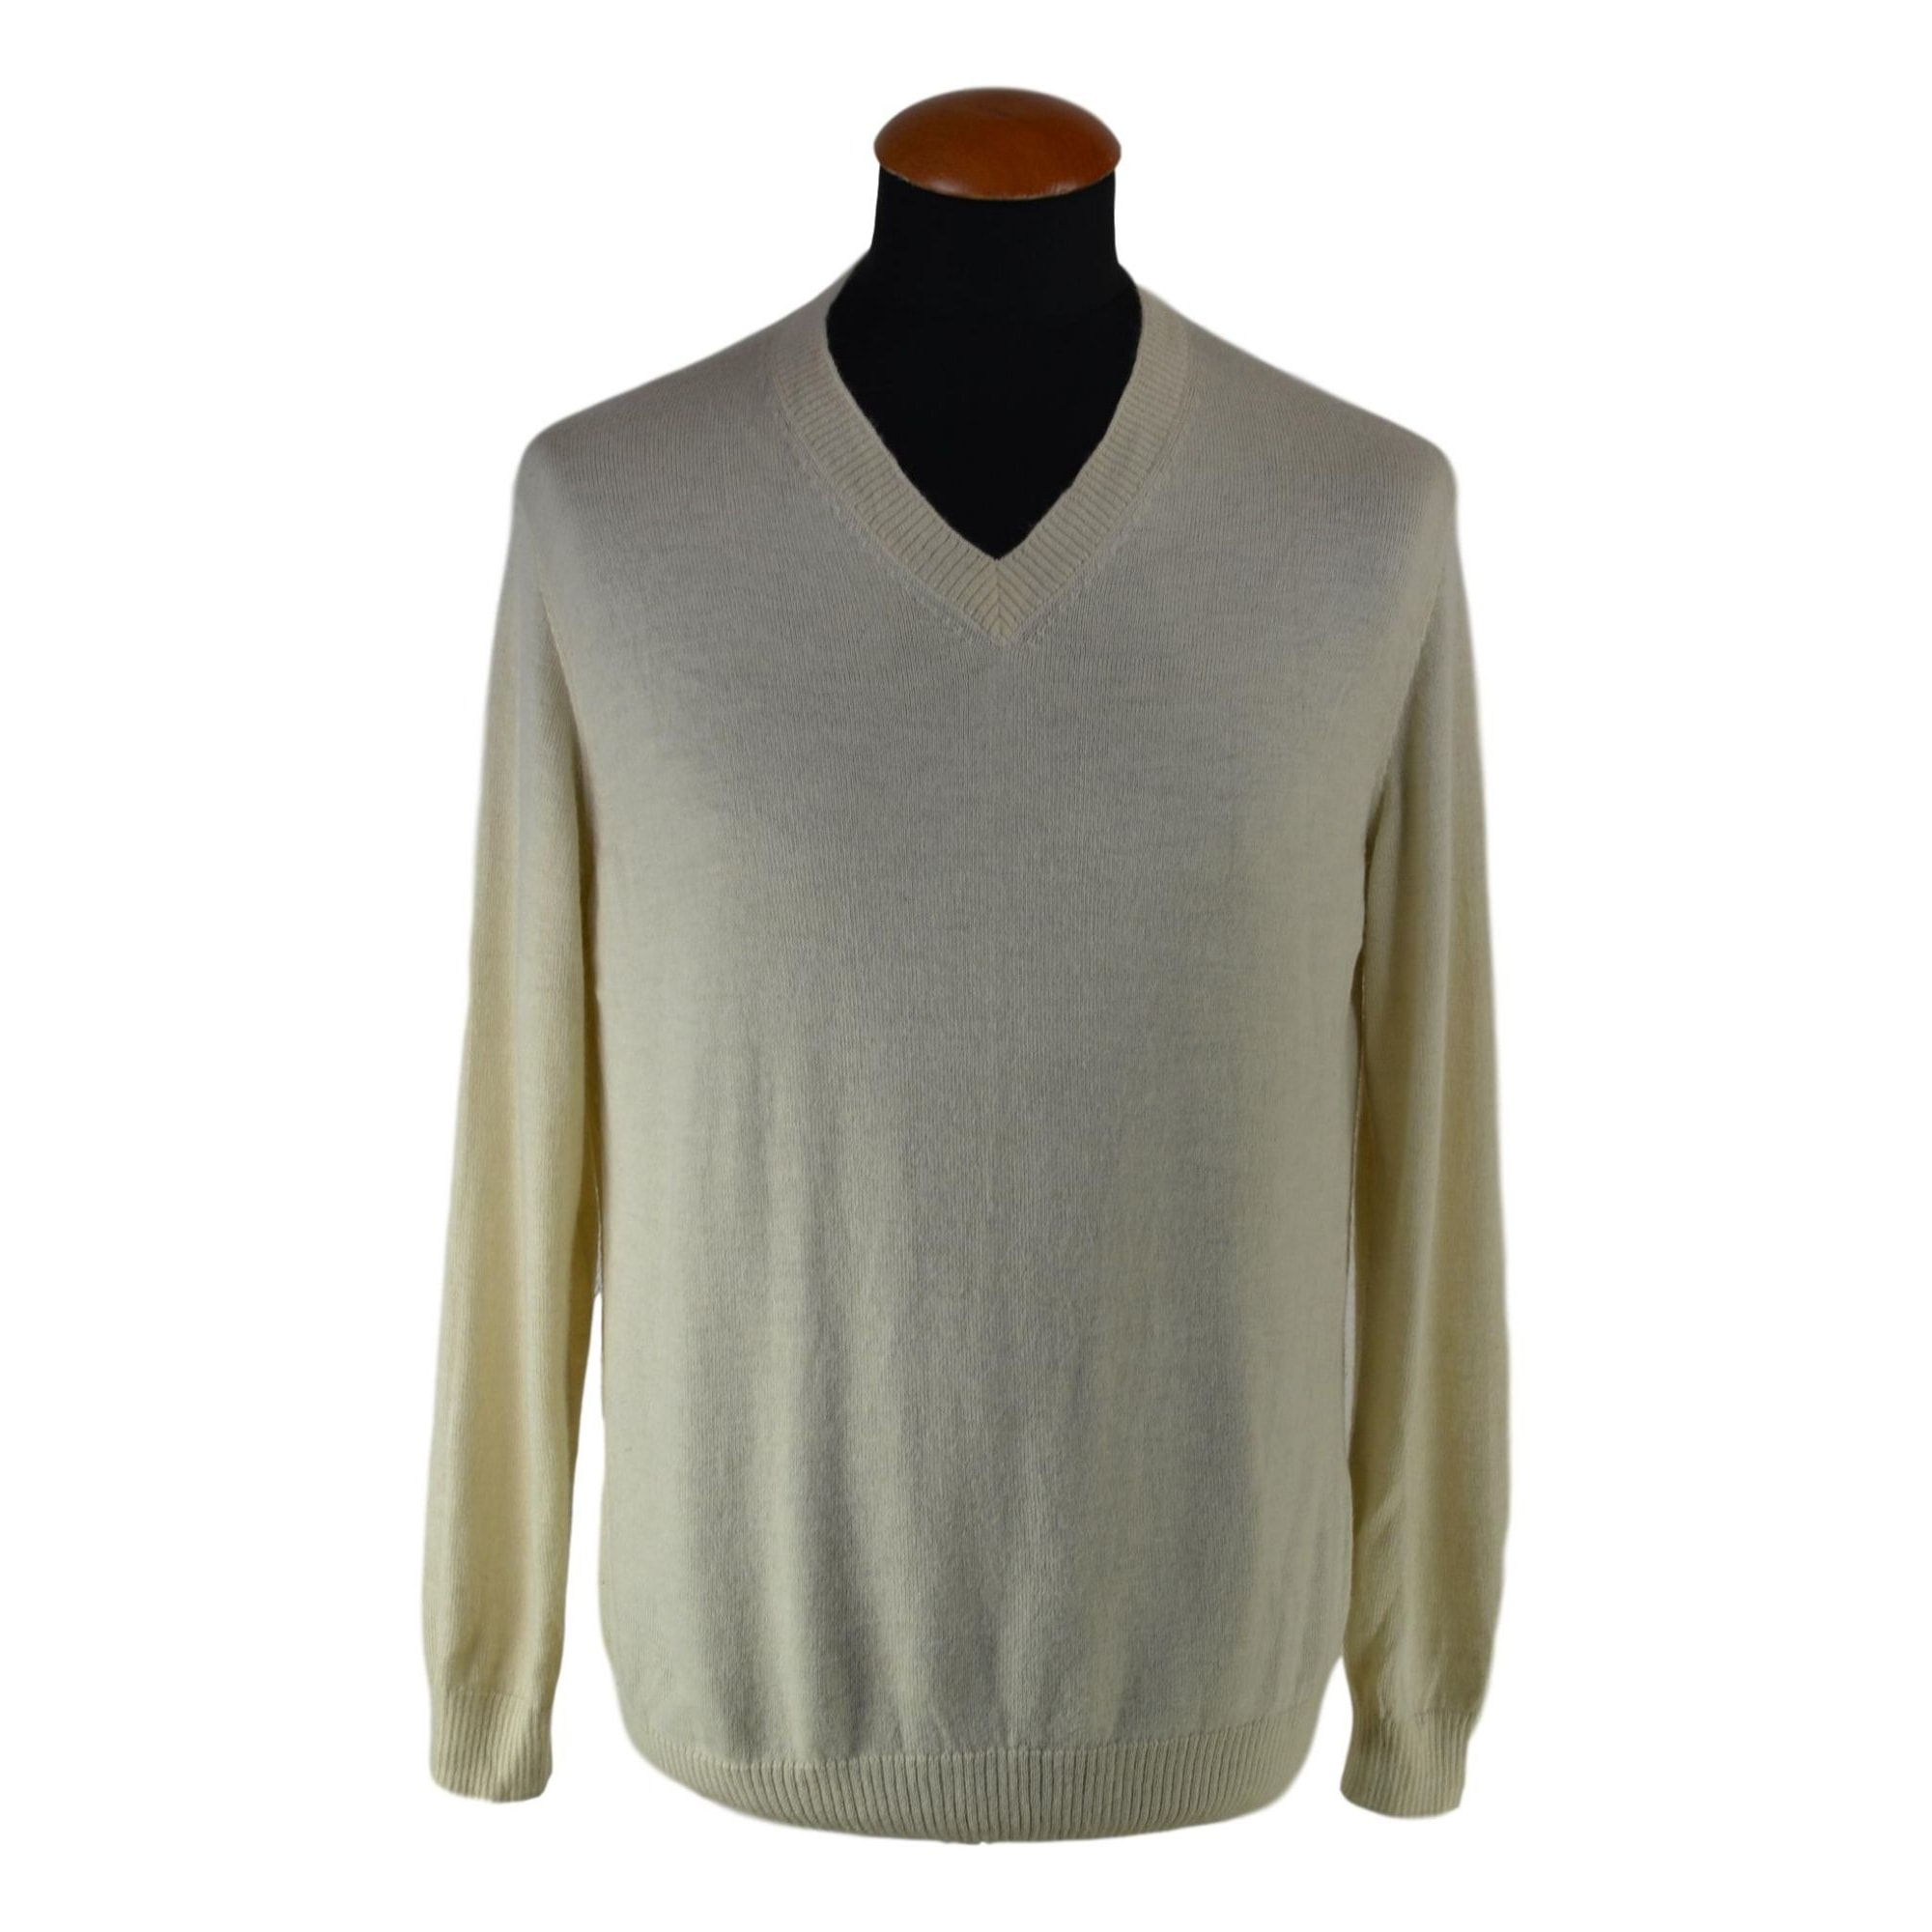 Sweat PERUVIAN CONNECTION Beige, camel